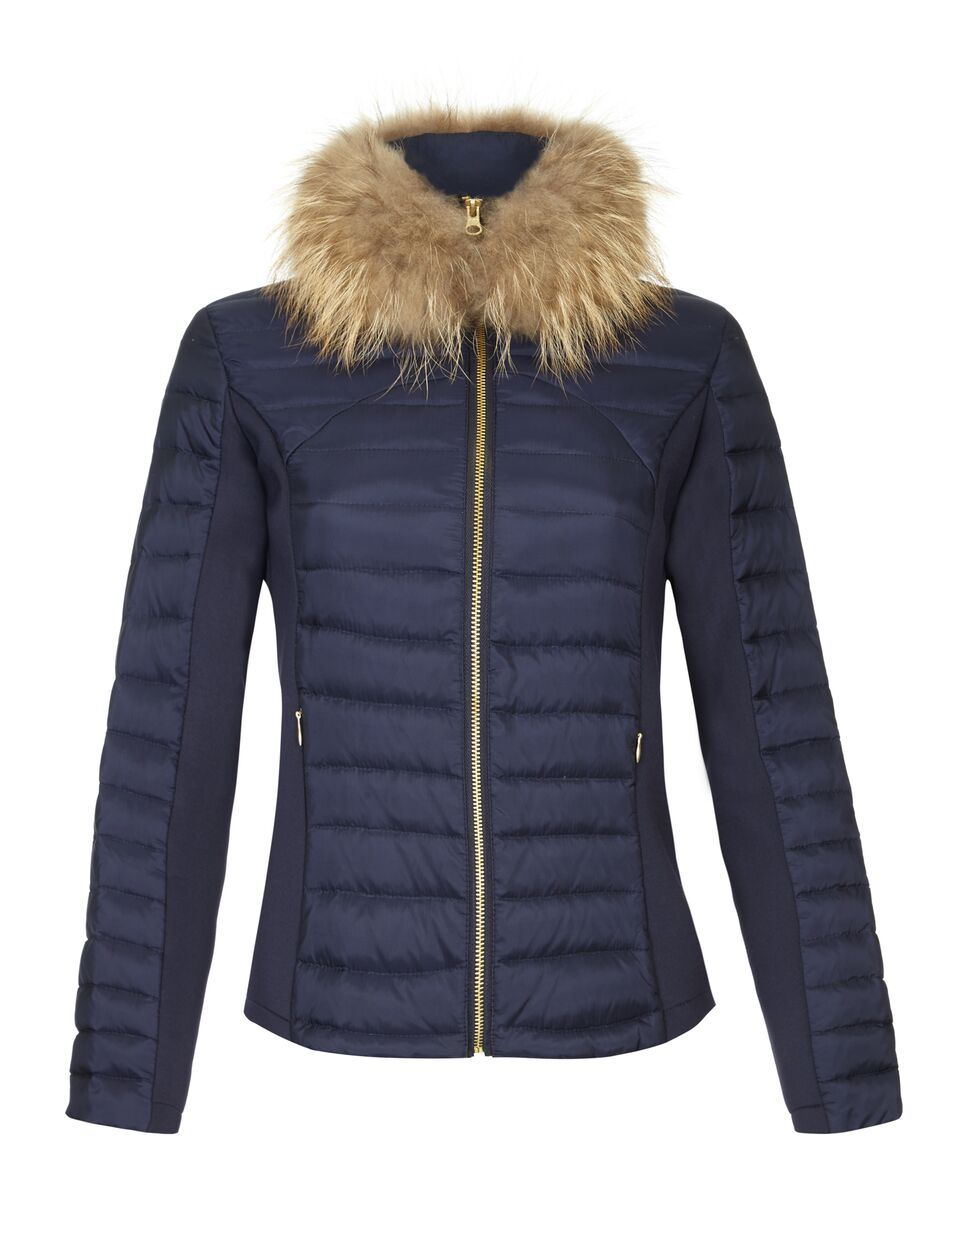 Guinea Short Padded Puffer Jacket for Ladies in Navy